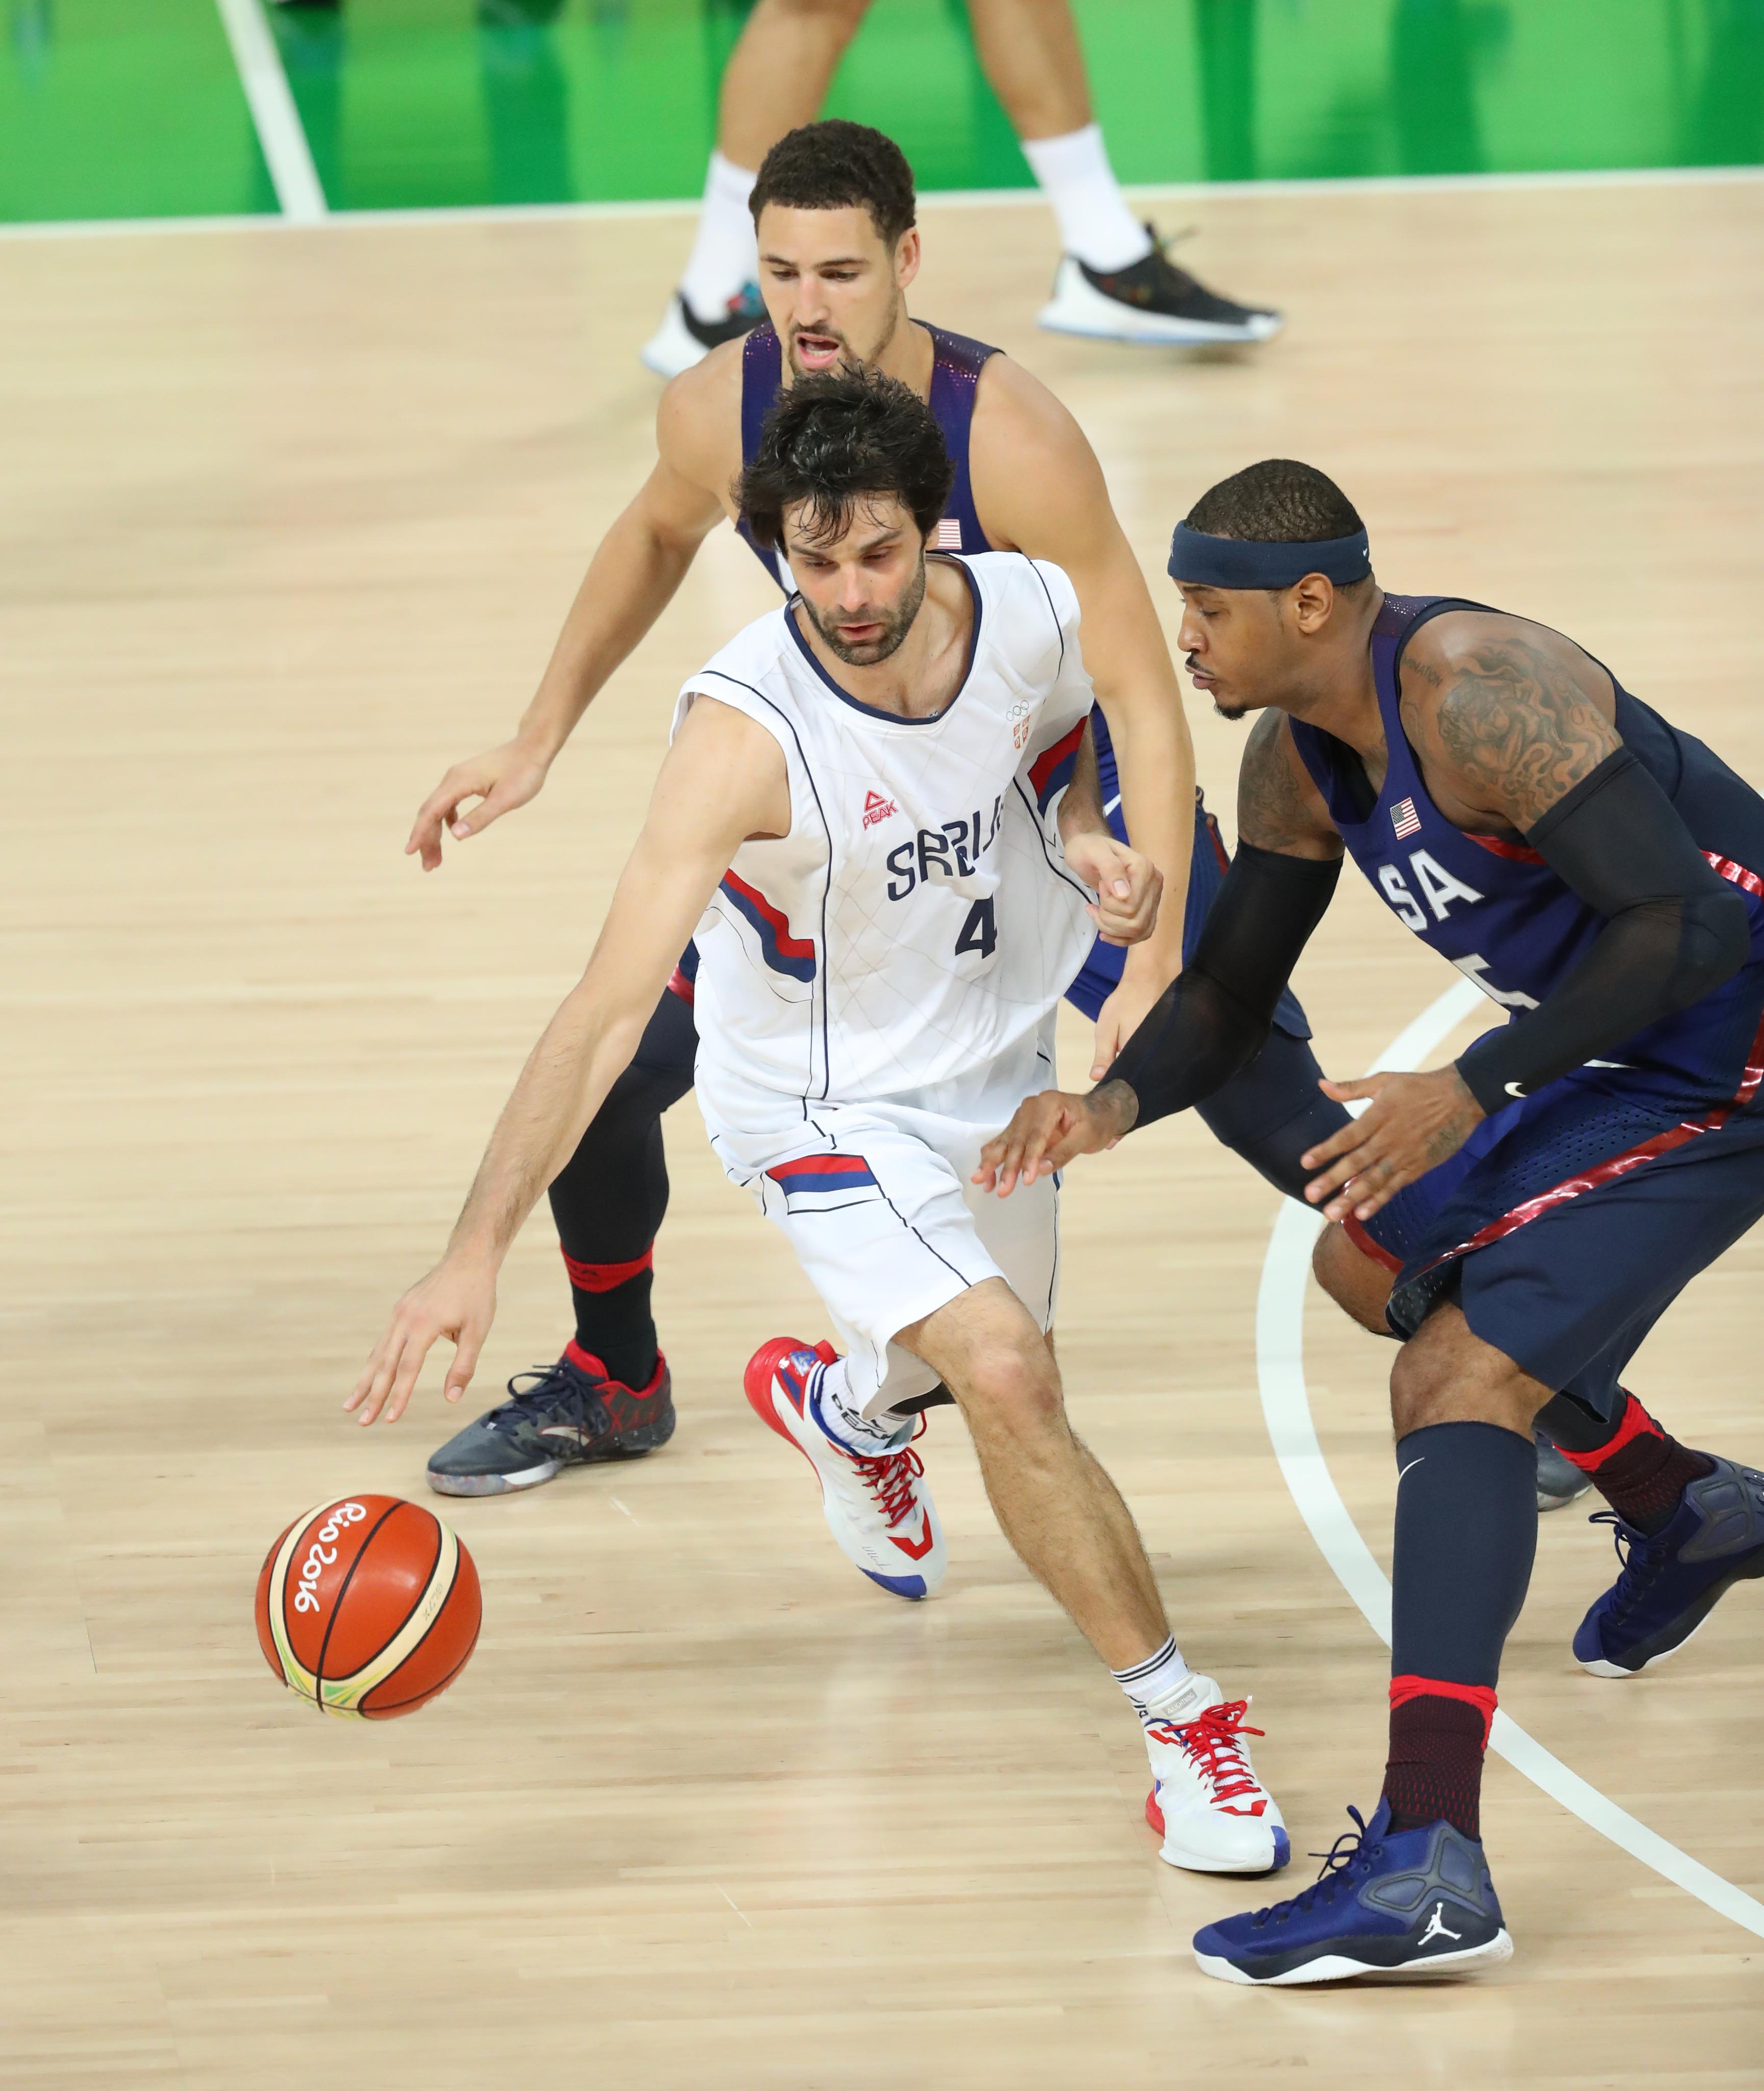 9495911-olympics-basketball-mens-team-final-srb-vs-usa